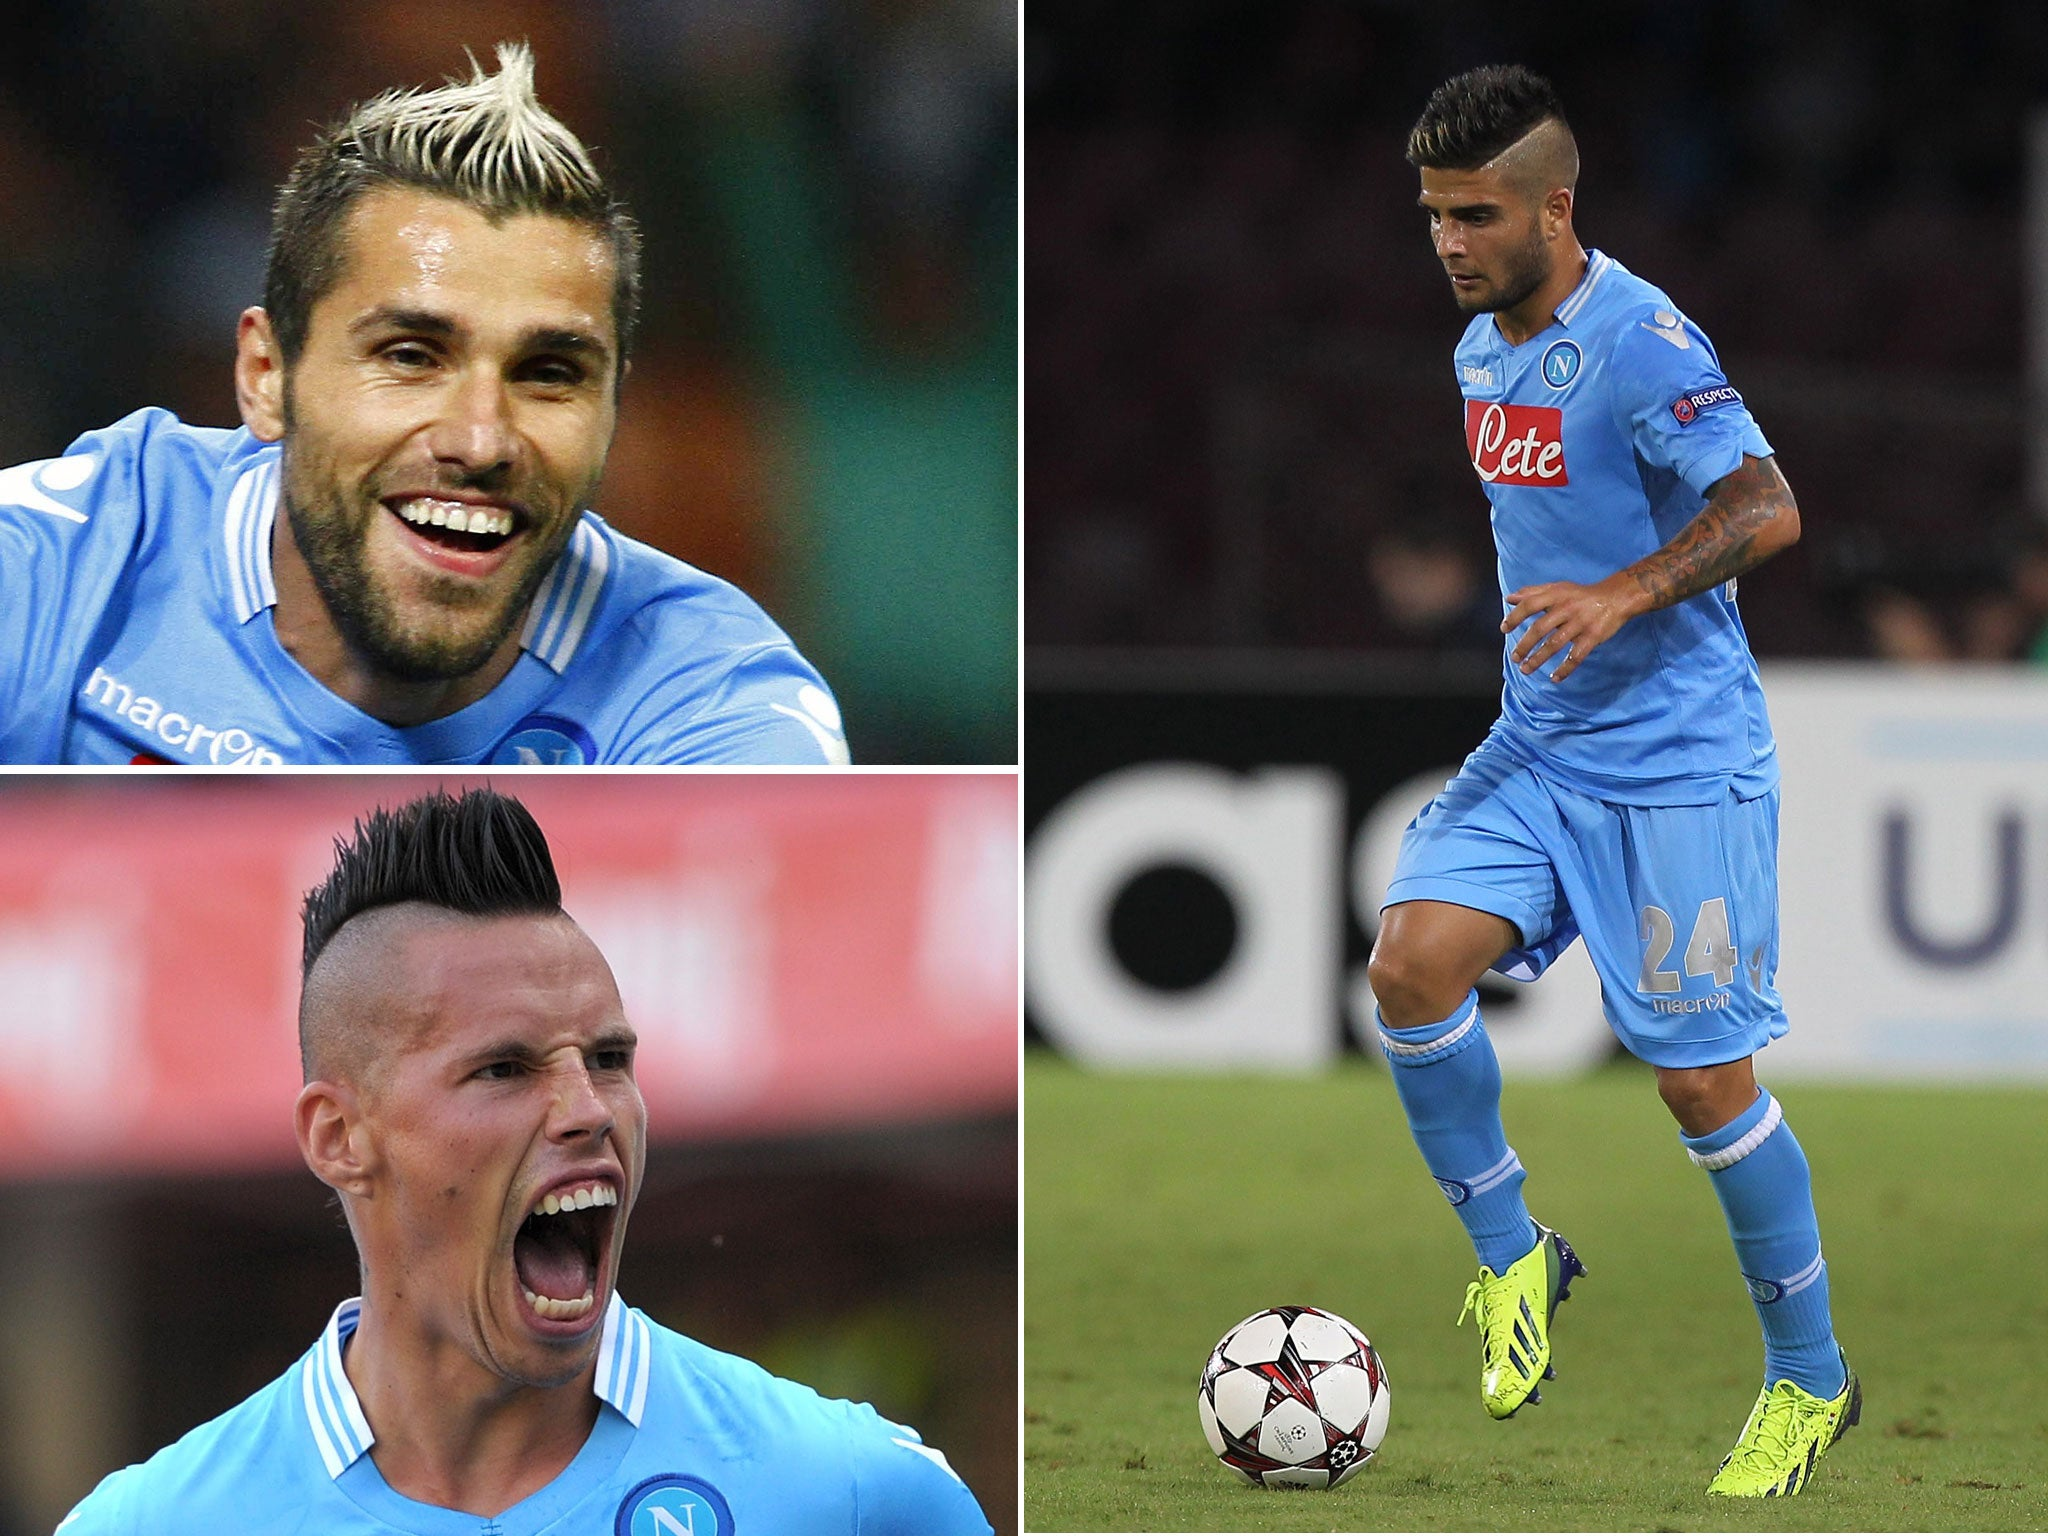 Arsenal V Napoli Arsenal Must Be Cautious Of Lorenzo Insigne And